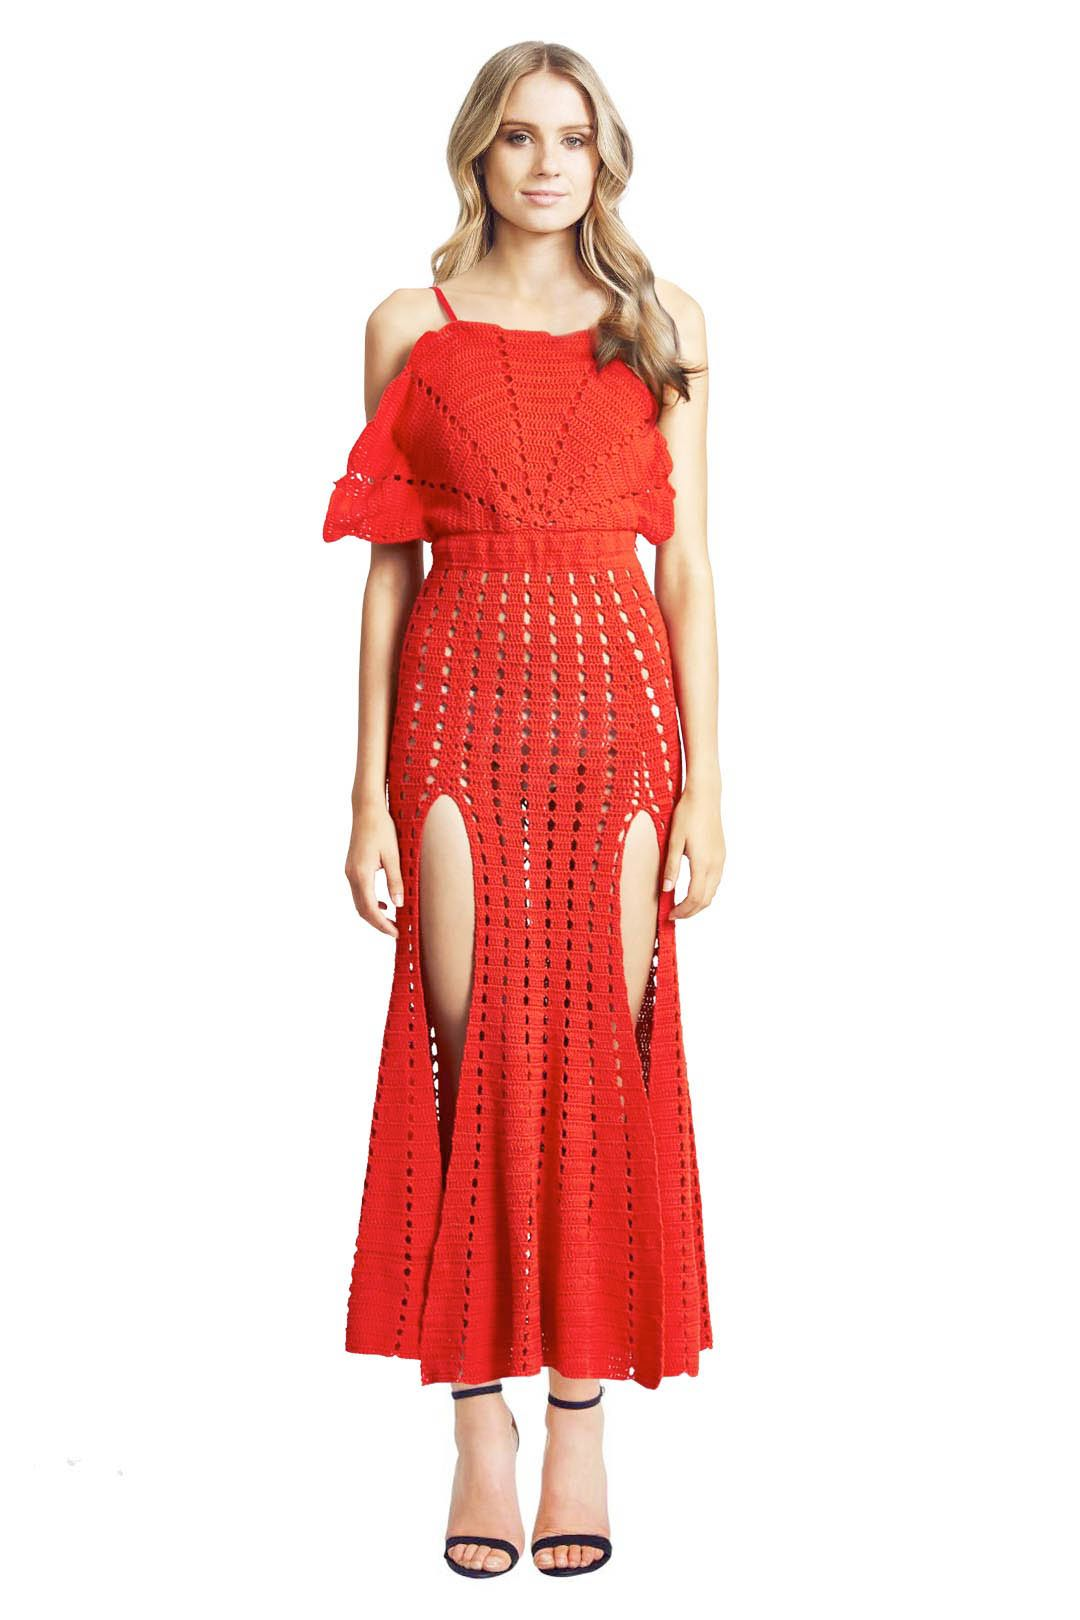 Alice McCall - Room is on Fire Dress - Red - Front